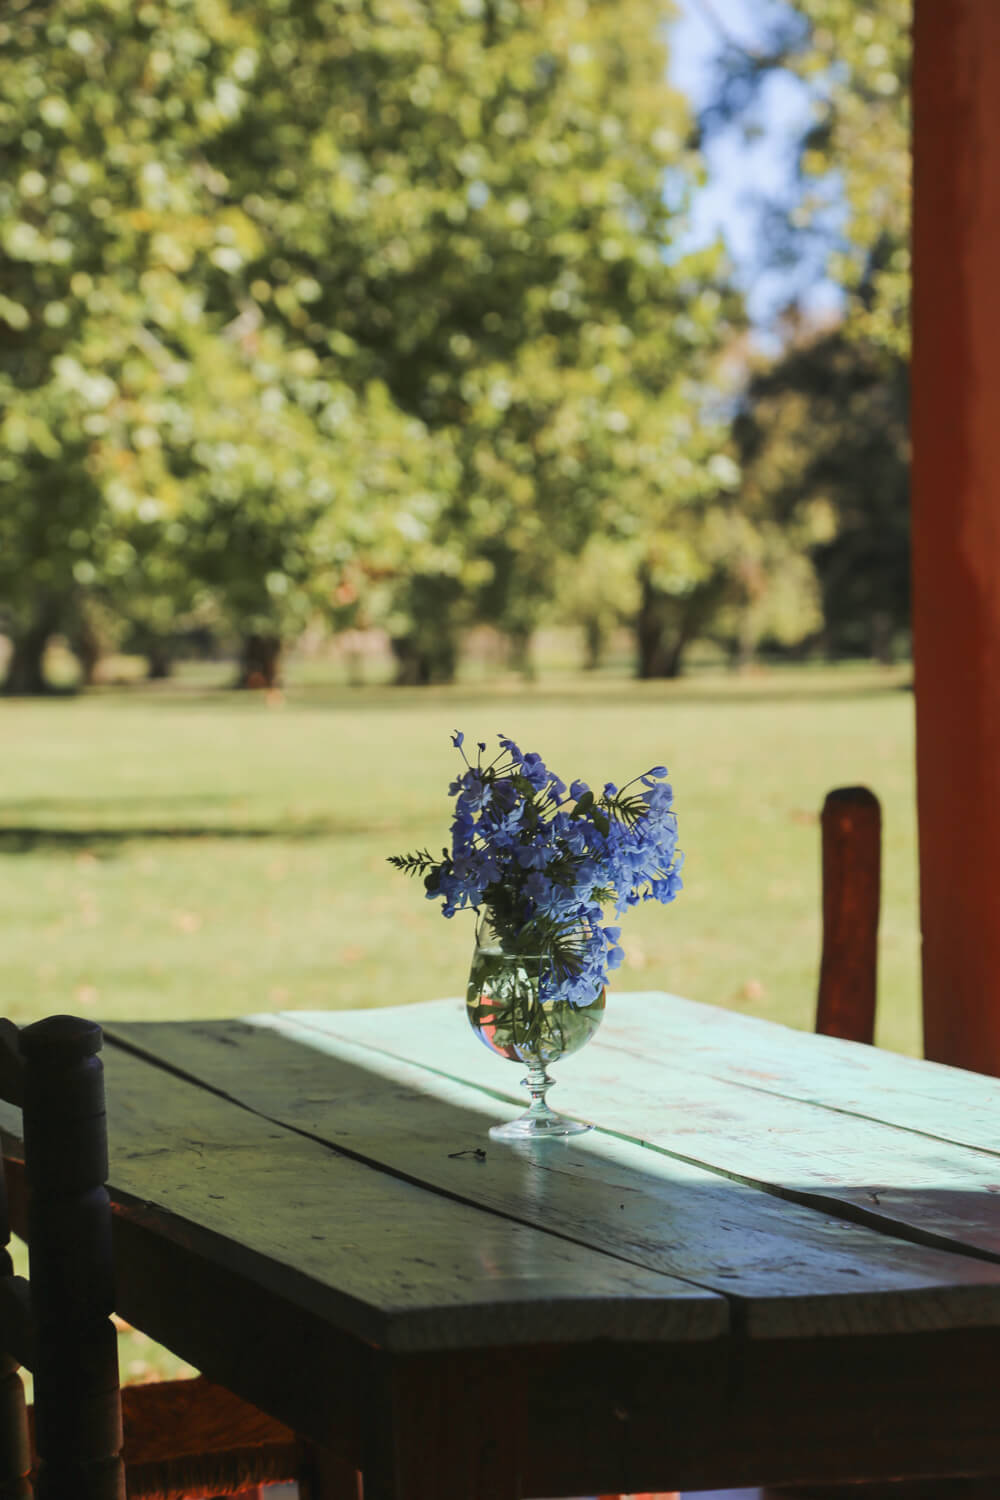 A glass with blue flowers sits on a blue table at the luxury estancia in Buenos Aires